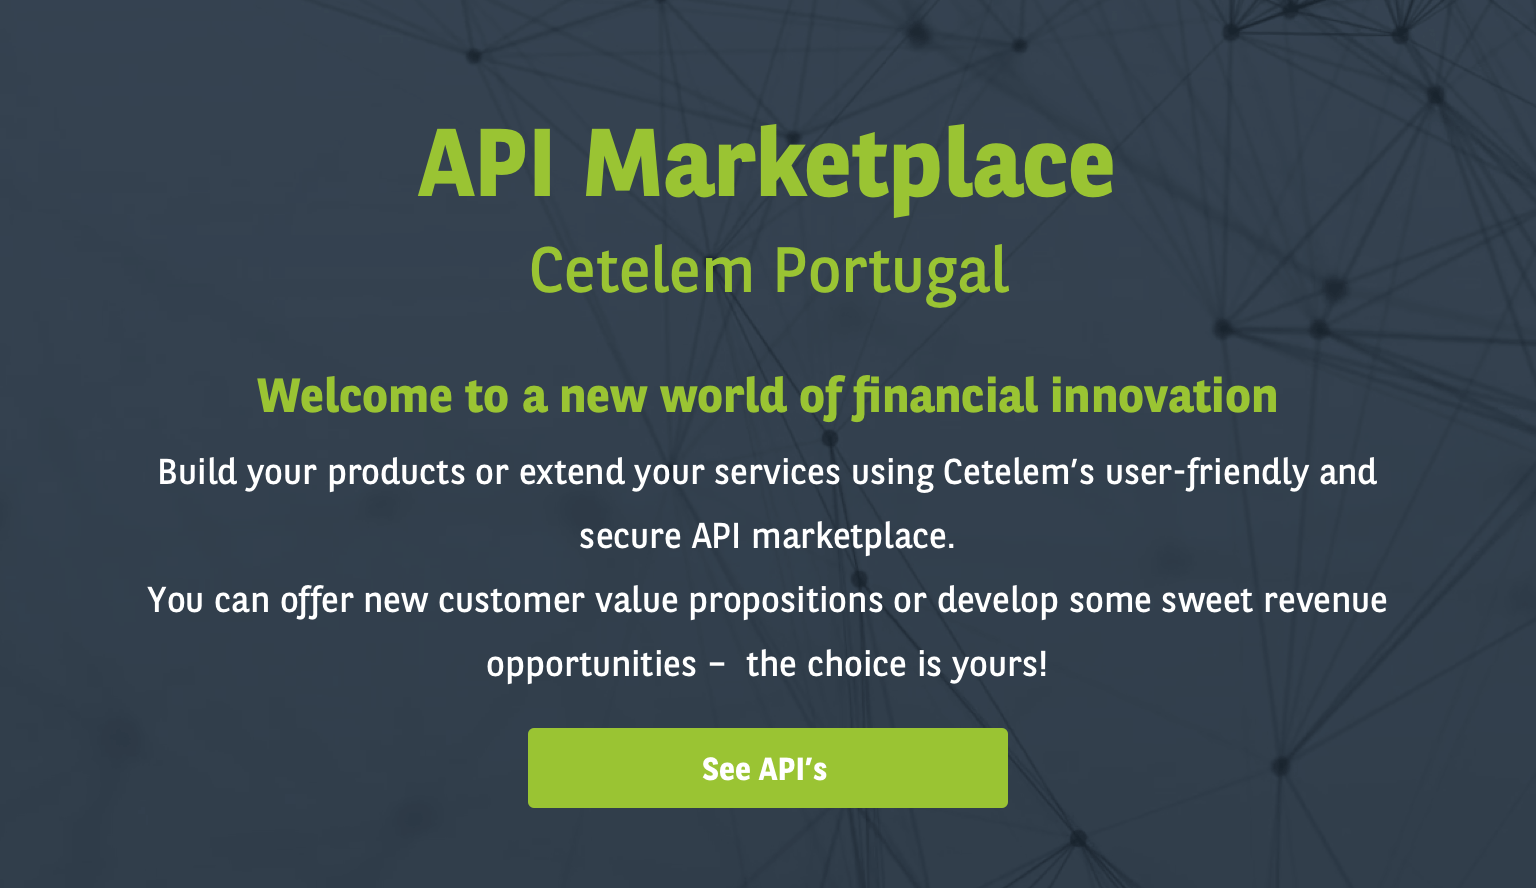 API Marketplace by Cetelem Portugal